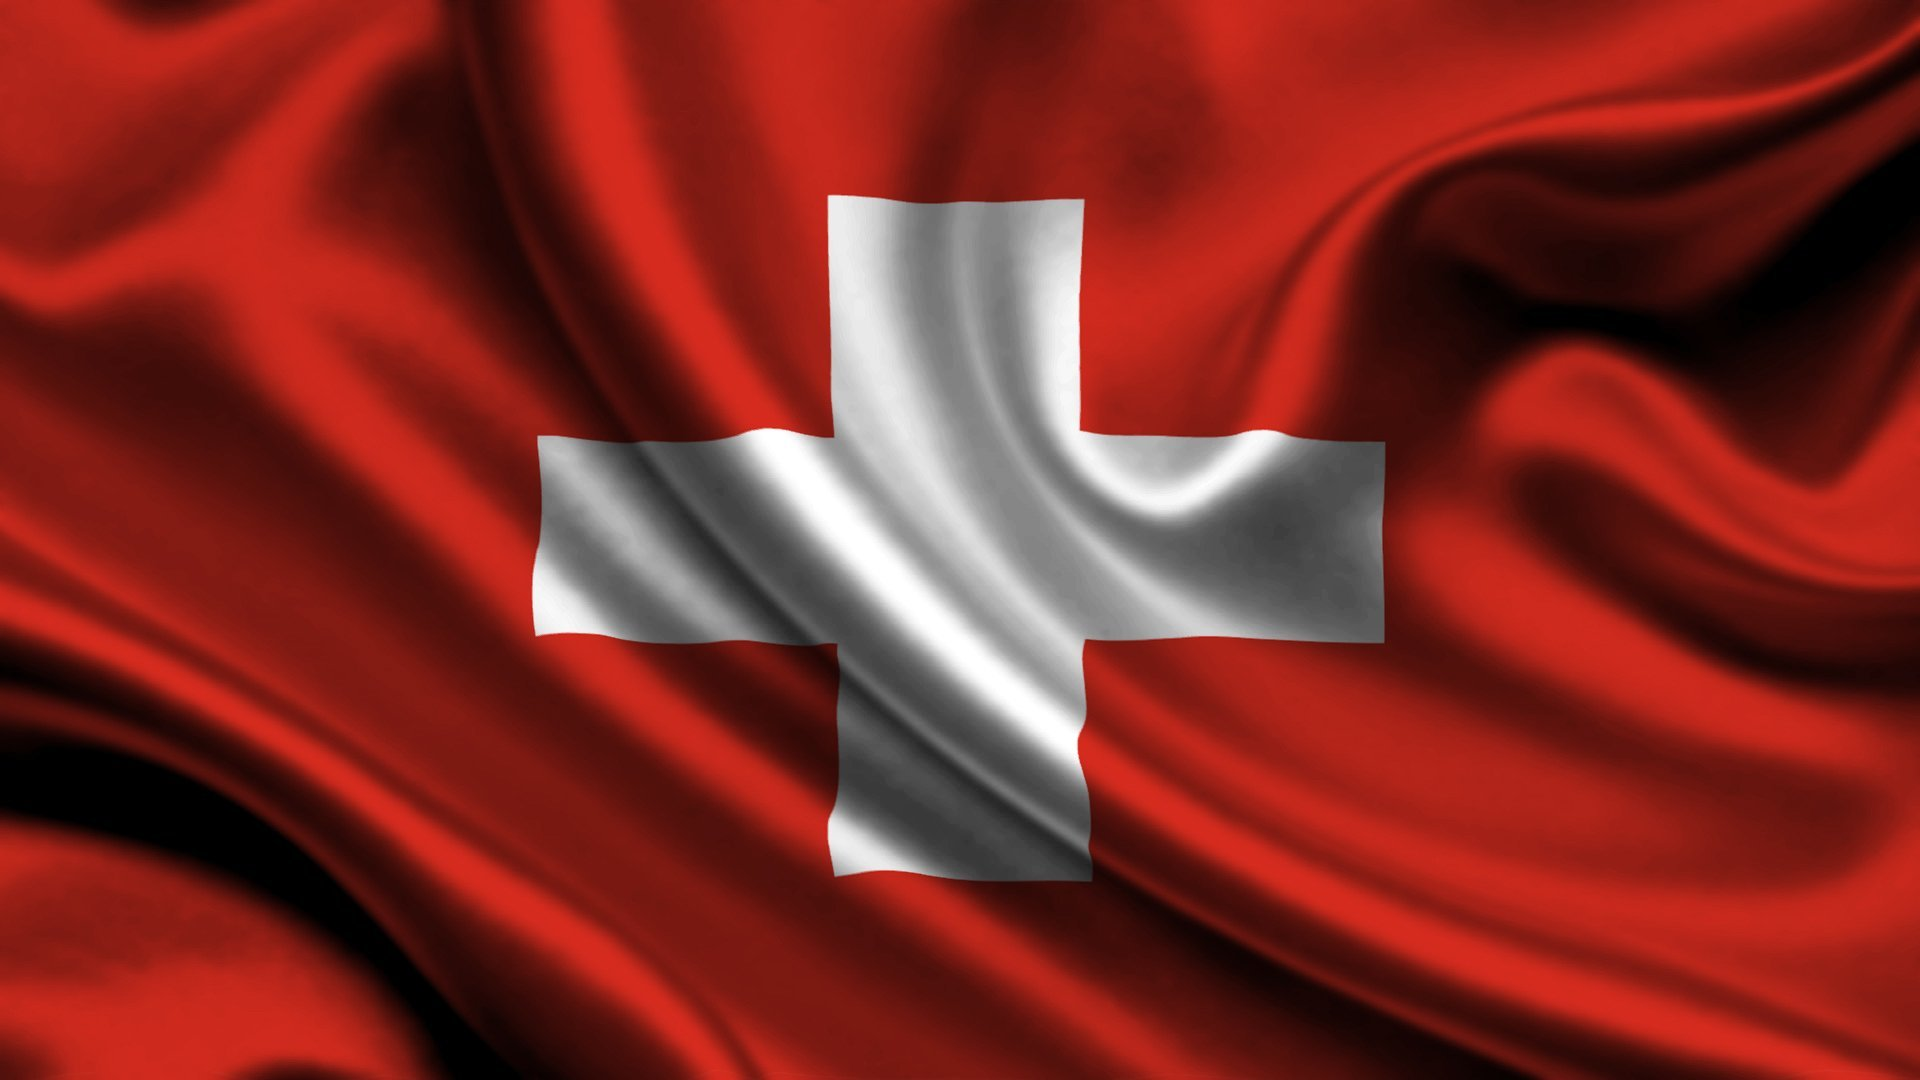 Large Switzerland flag | Big Swiss flag | Giant Switzerland flag